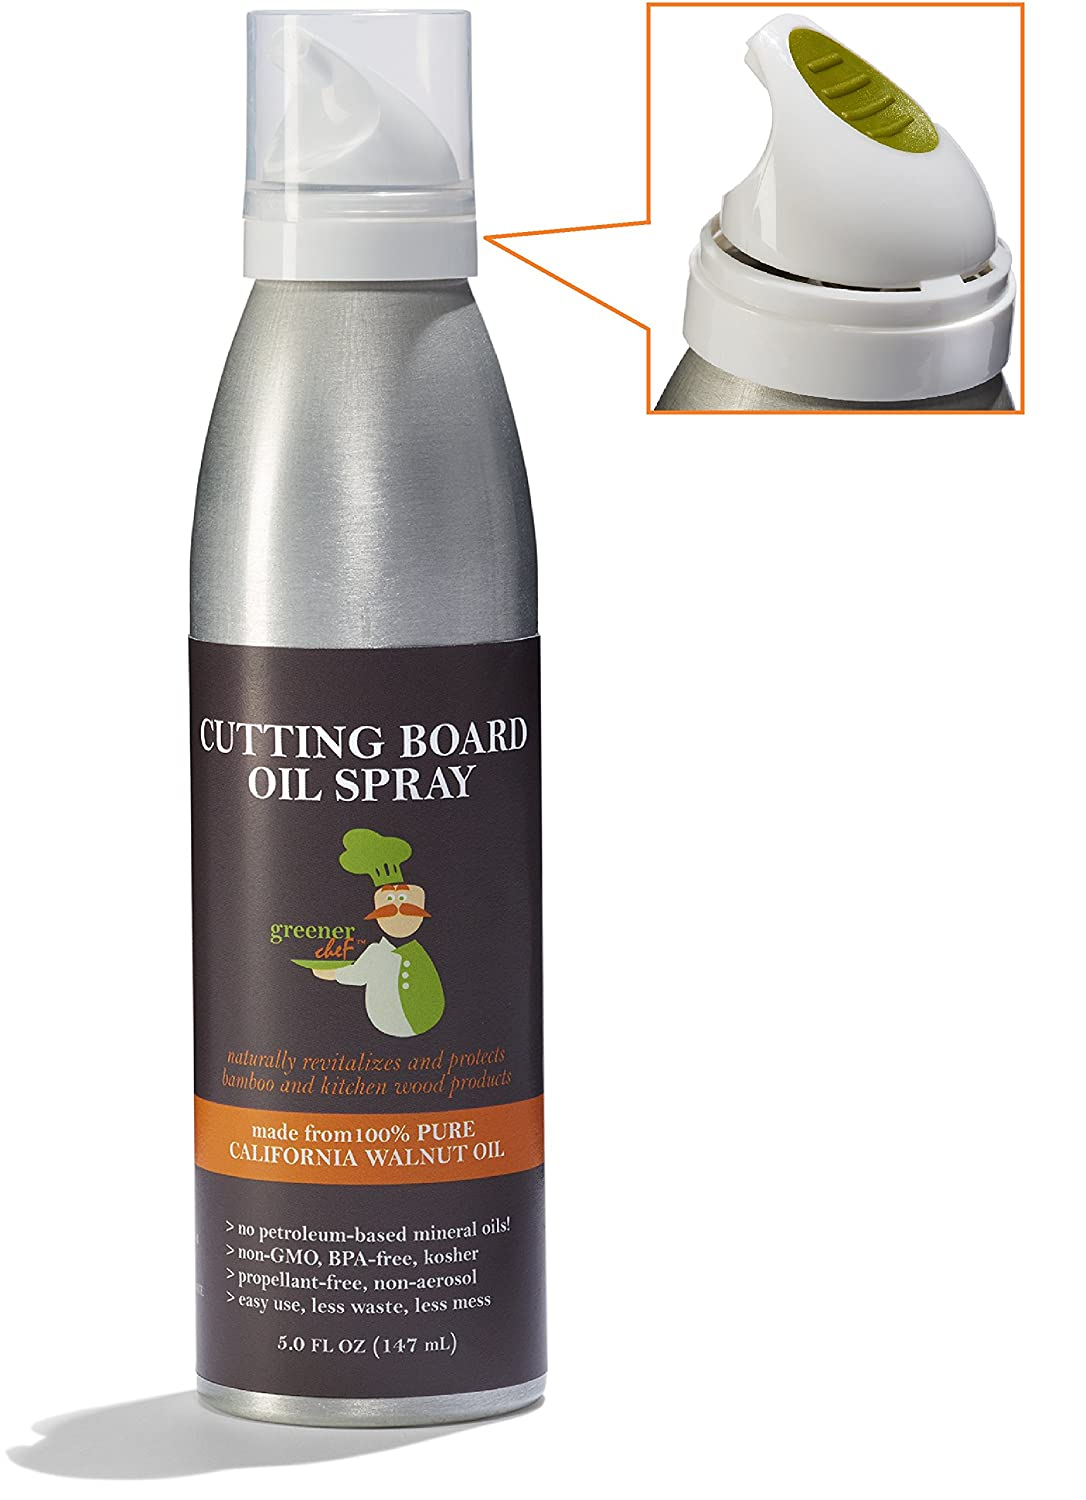 Oil for butcher block - Amazon Com Greener Chef Cutting Board Oil Food Based Butcher Block Spray Pure Walnut Oil Vegan Approved Made In Usa Kitchen Dining